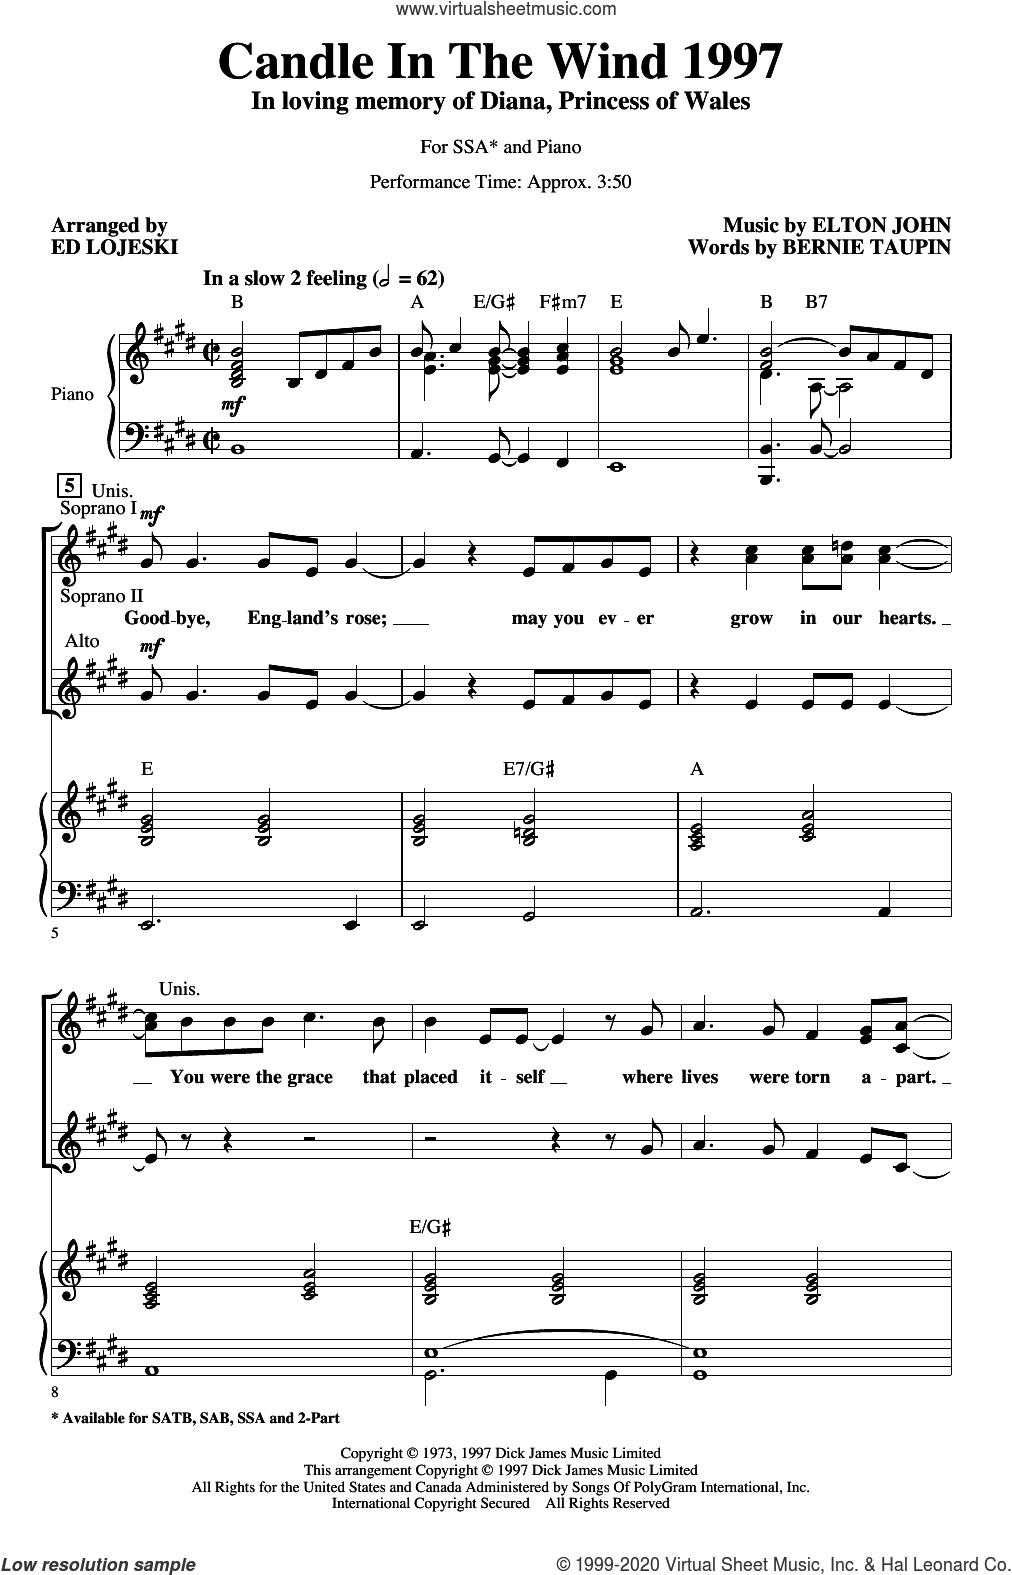 Candle In The Wind (arr. Ed Lojeski) sheet music for choir (SSA: soprano, alto) by Elton John, Ed Lojeski and Bernie Taupin, intermediate skill level